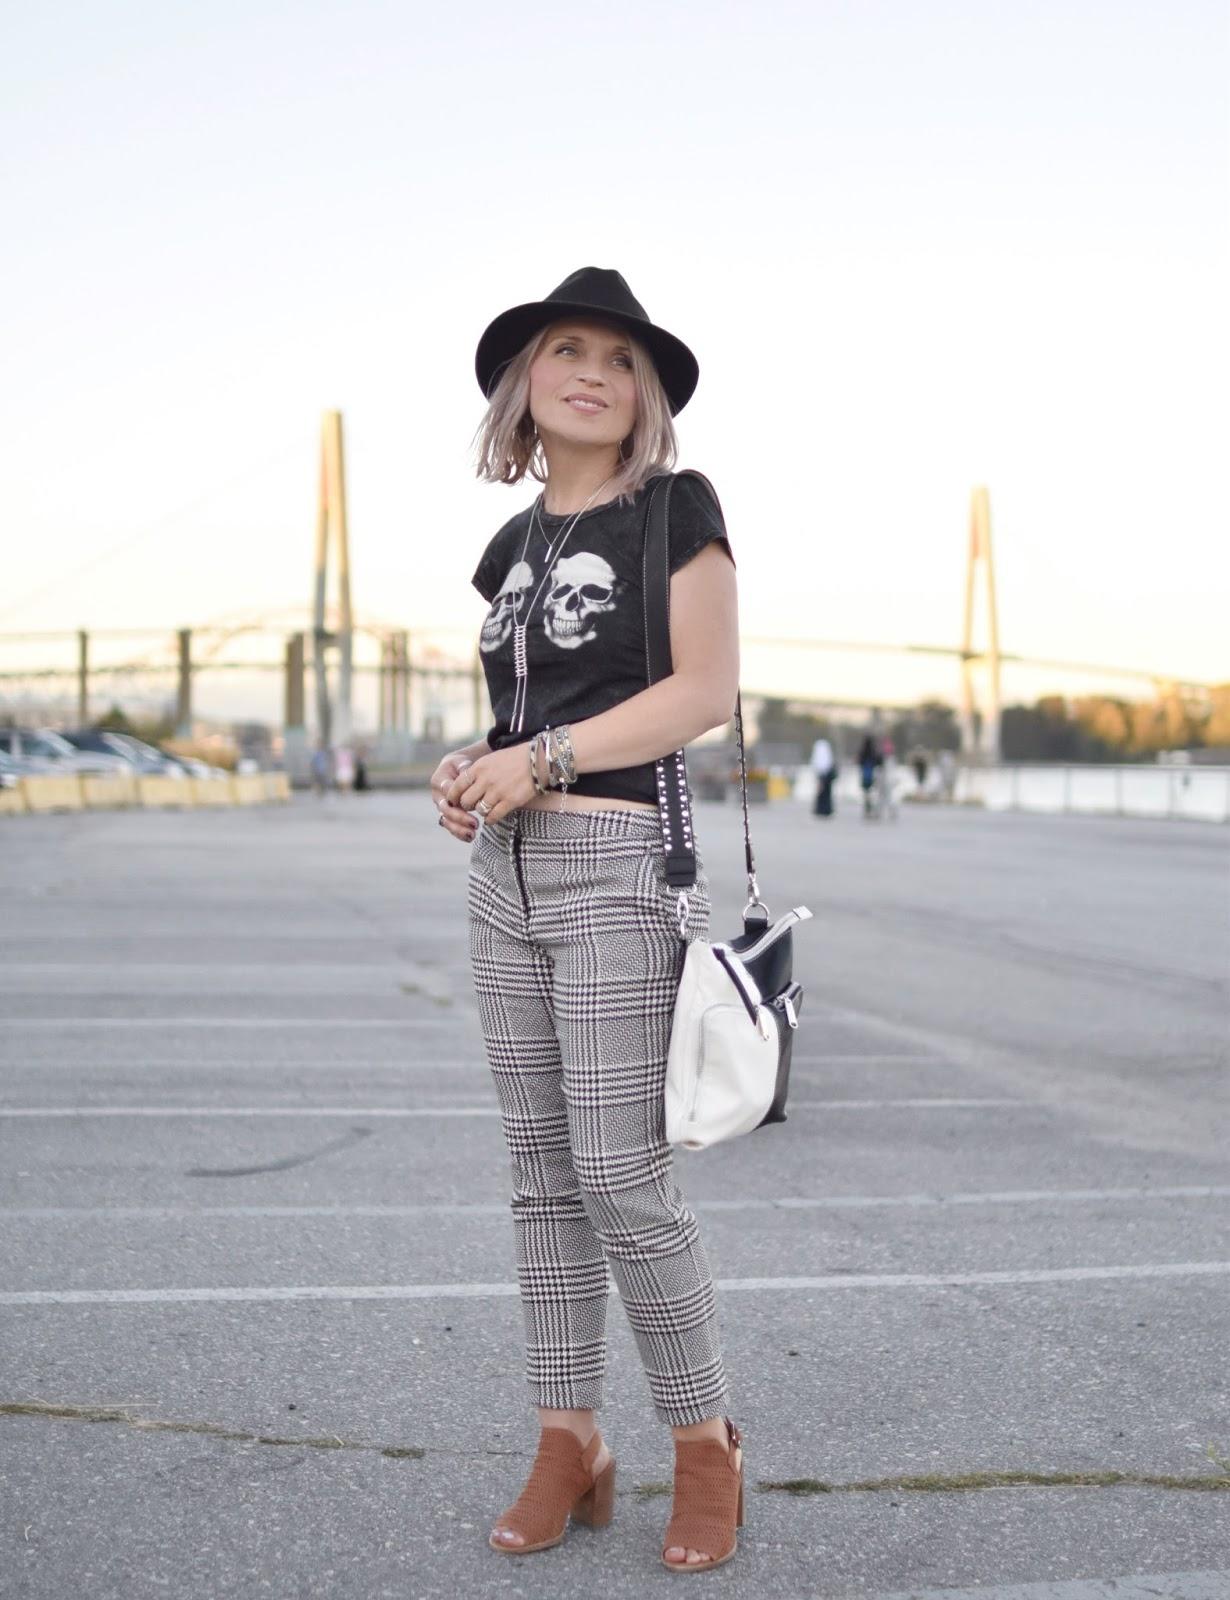 Monika Faulkner outfit inspiration - styling houndstooth trousers with a skull tee, open-toe booties, and a felt fedora